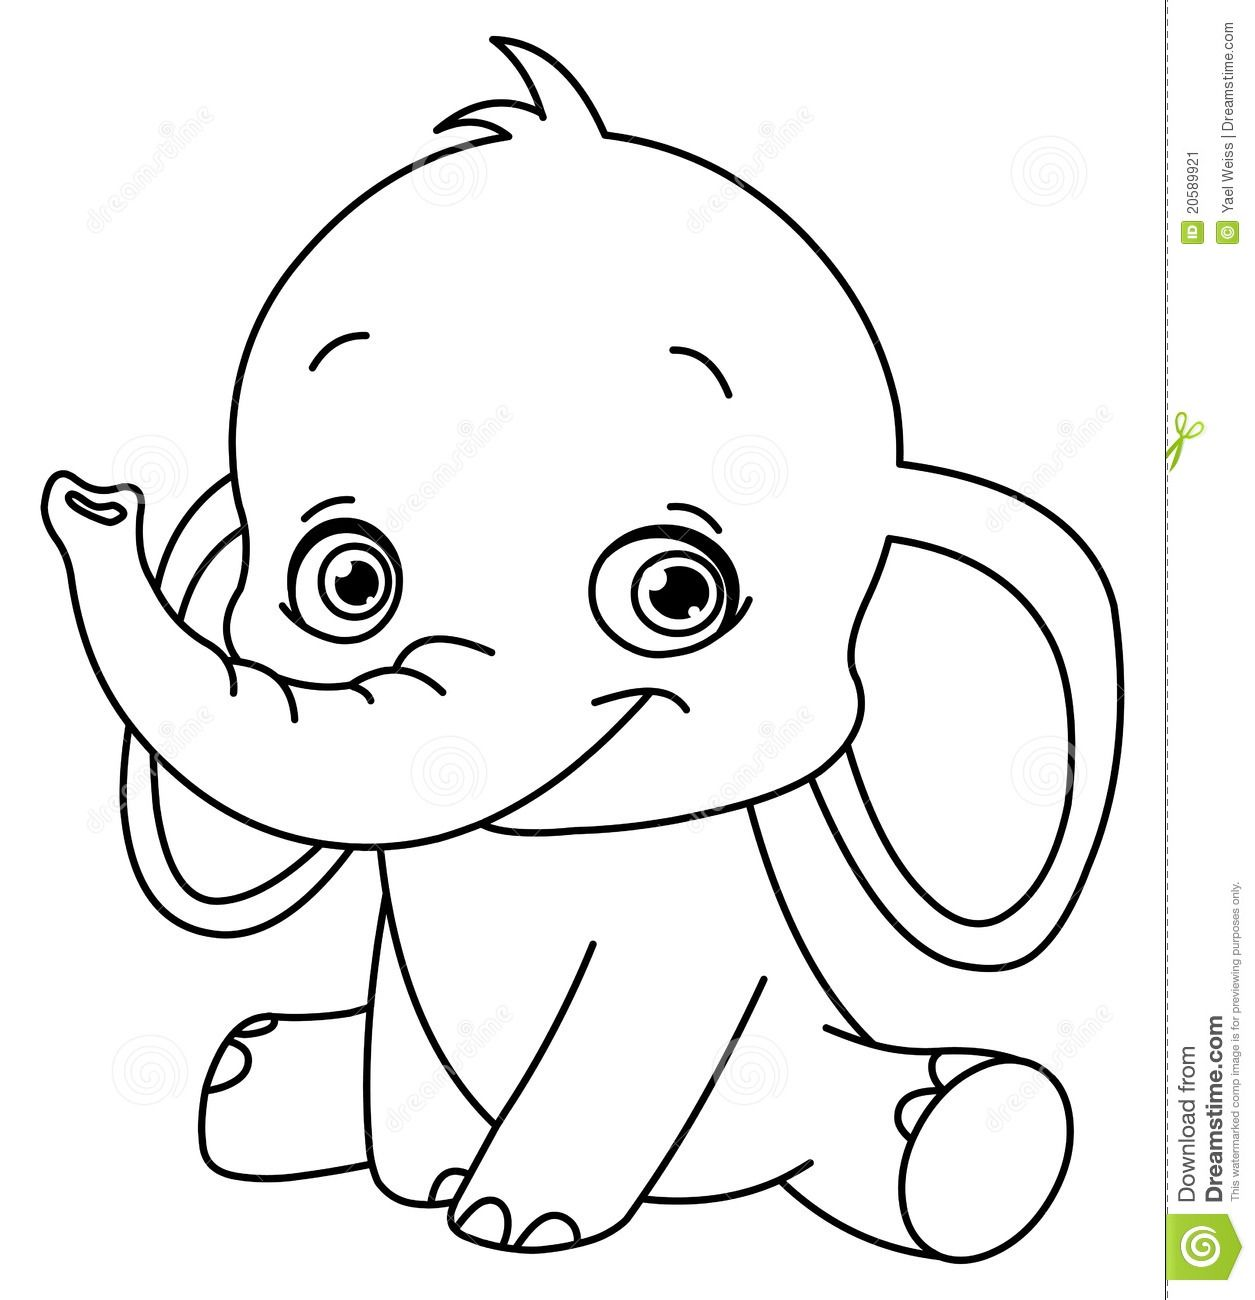 Baby elephant coloring pages to download and print for free | Alexa ...